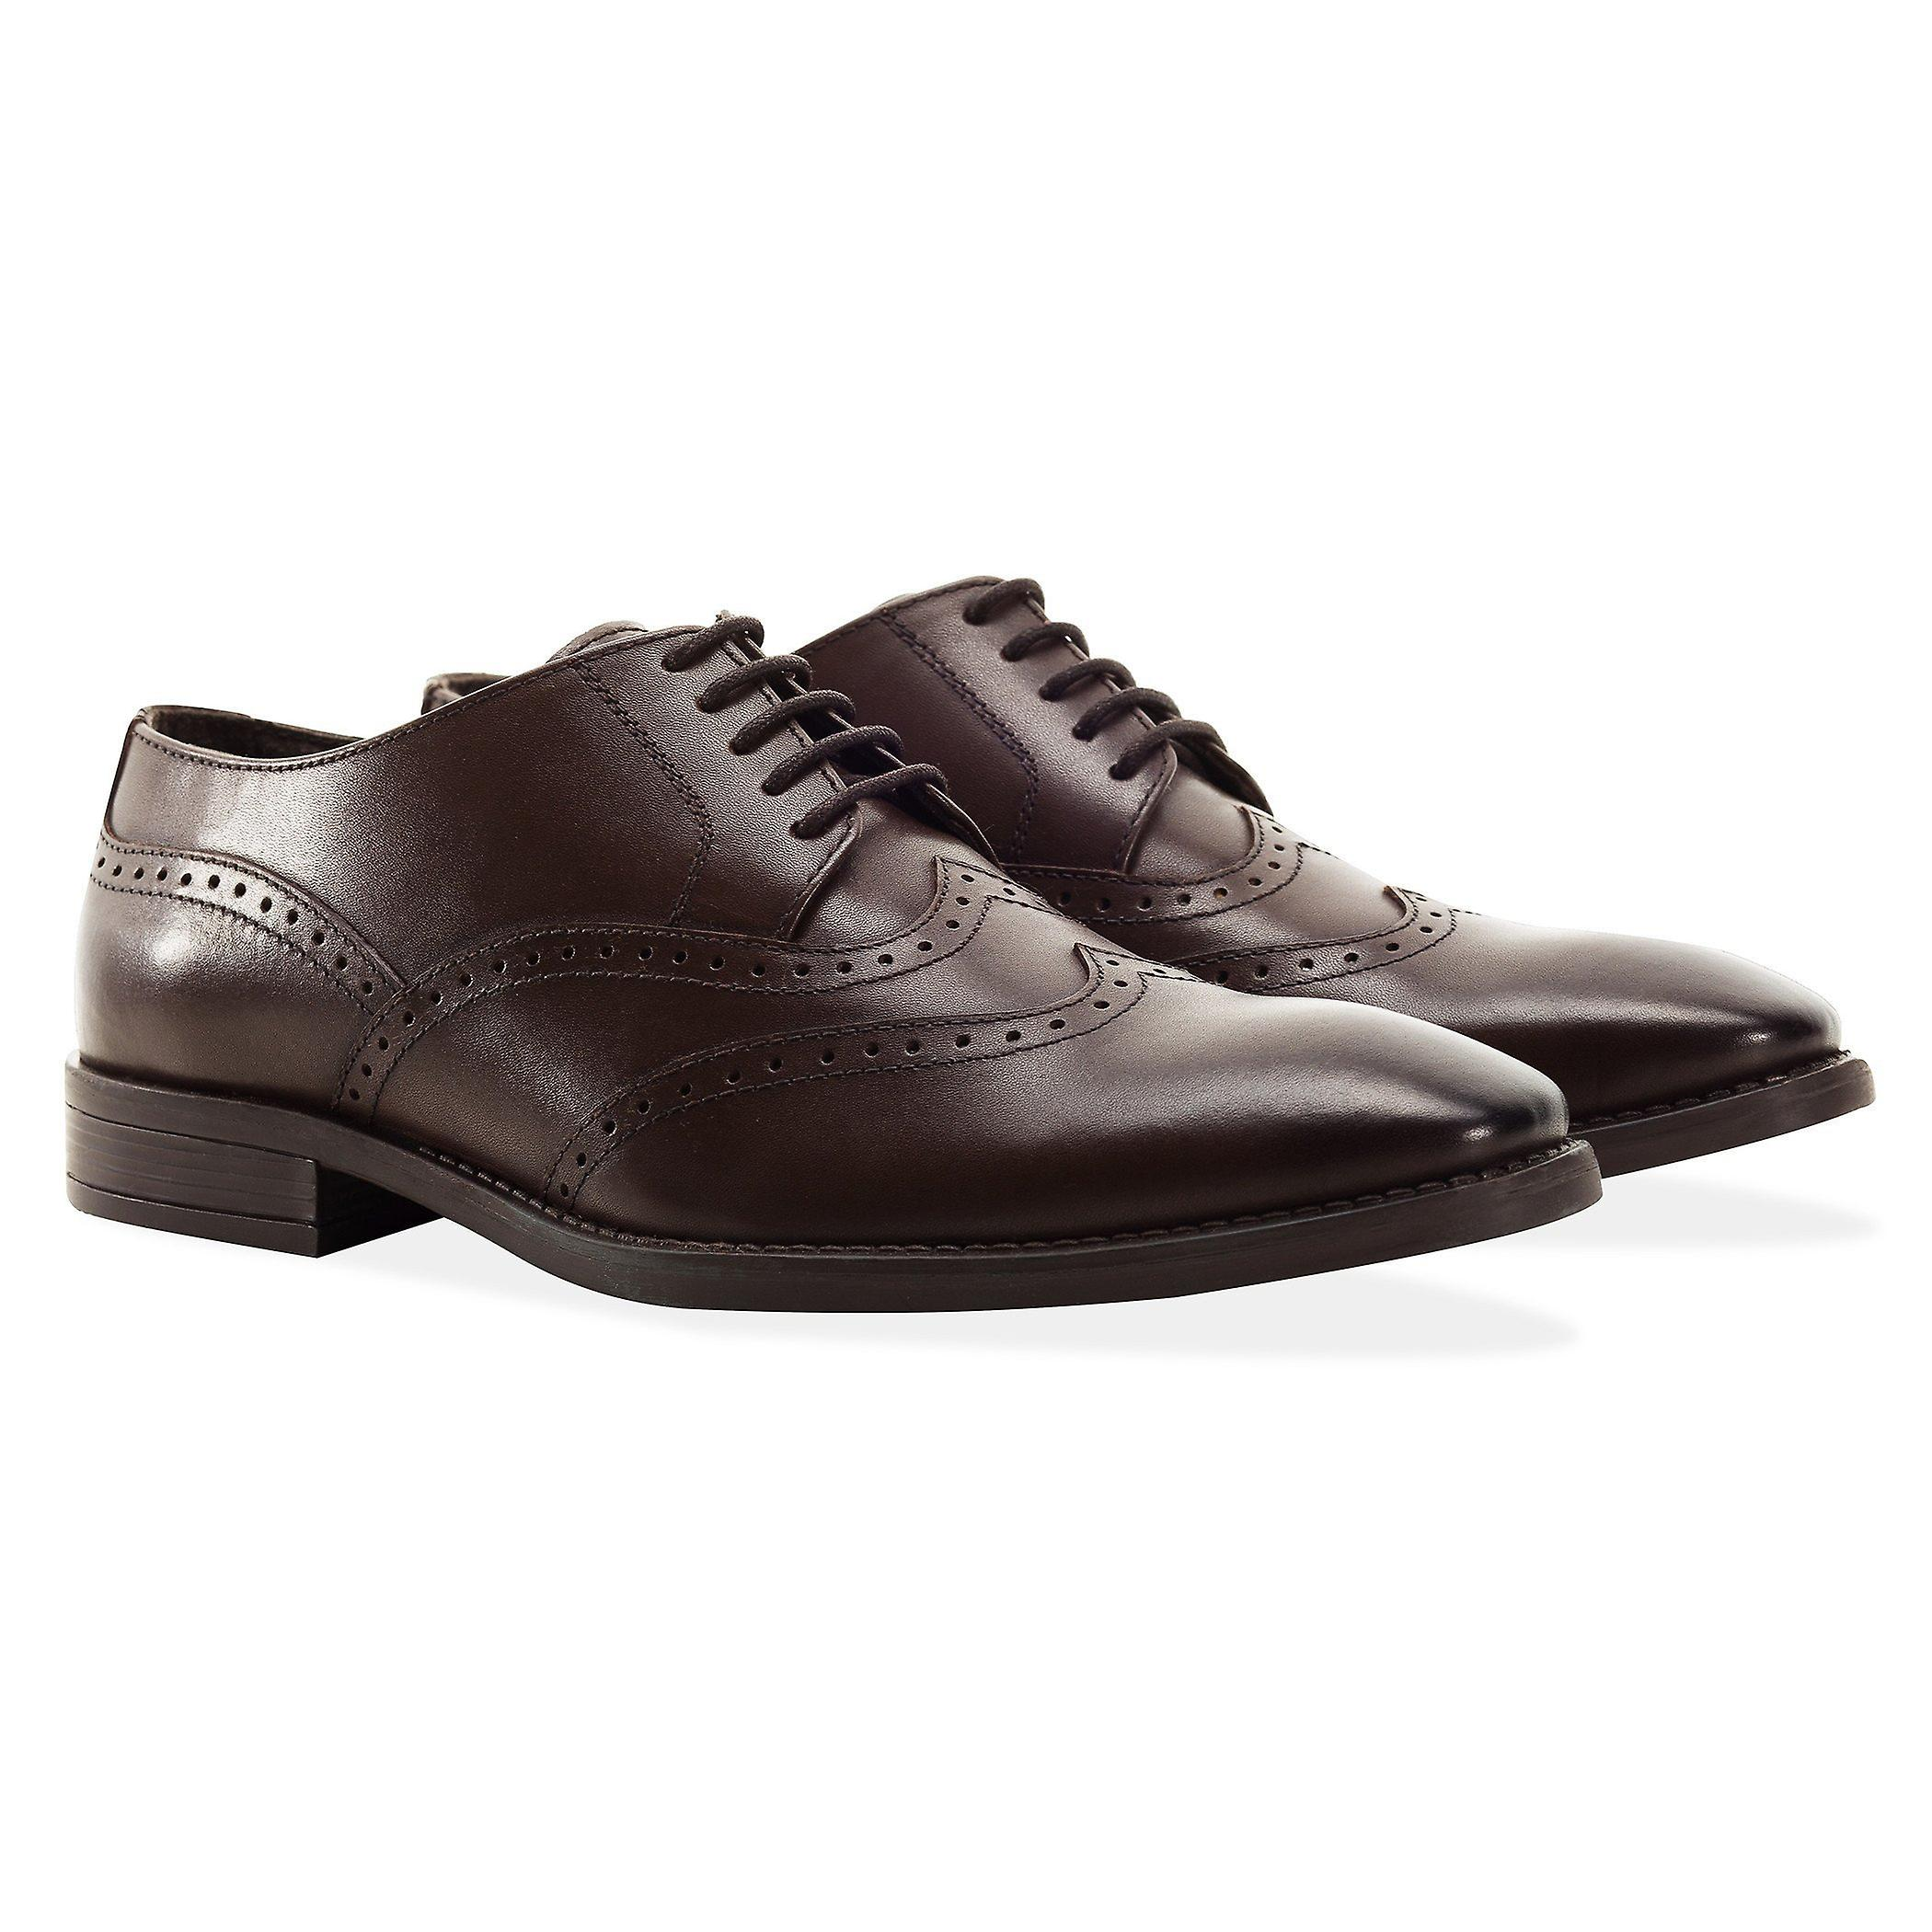 Mens marron double wing tip chaussures